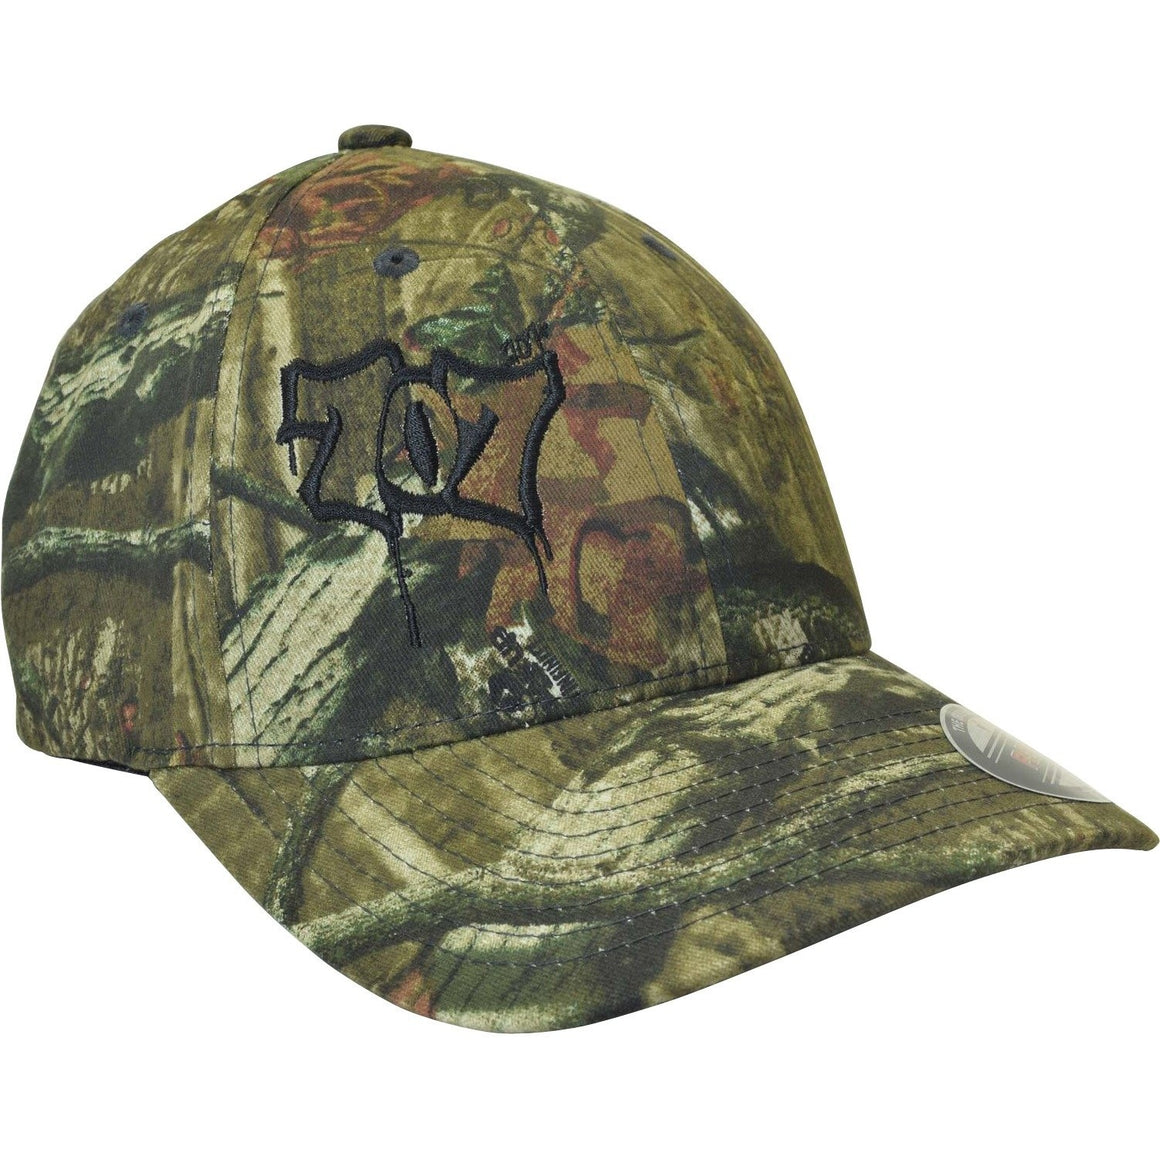 Curved Bill 707 Mossy Oak Infinity Flexfit Hat - Humboldt Clothing Company